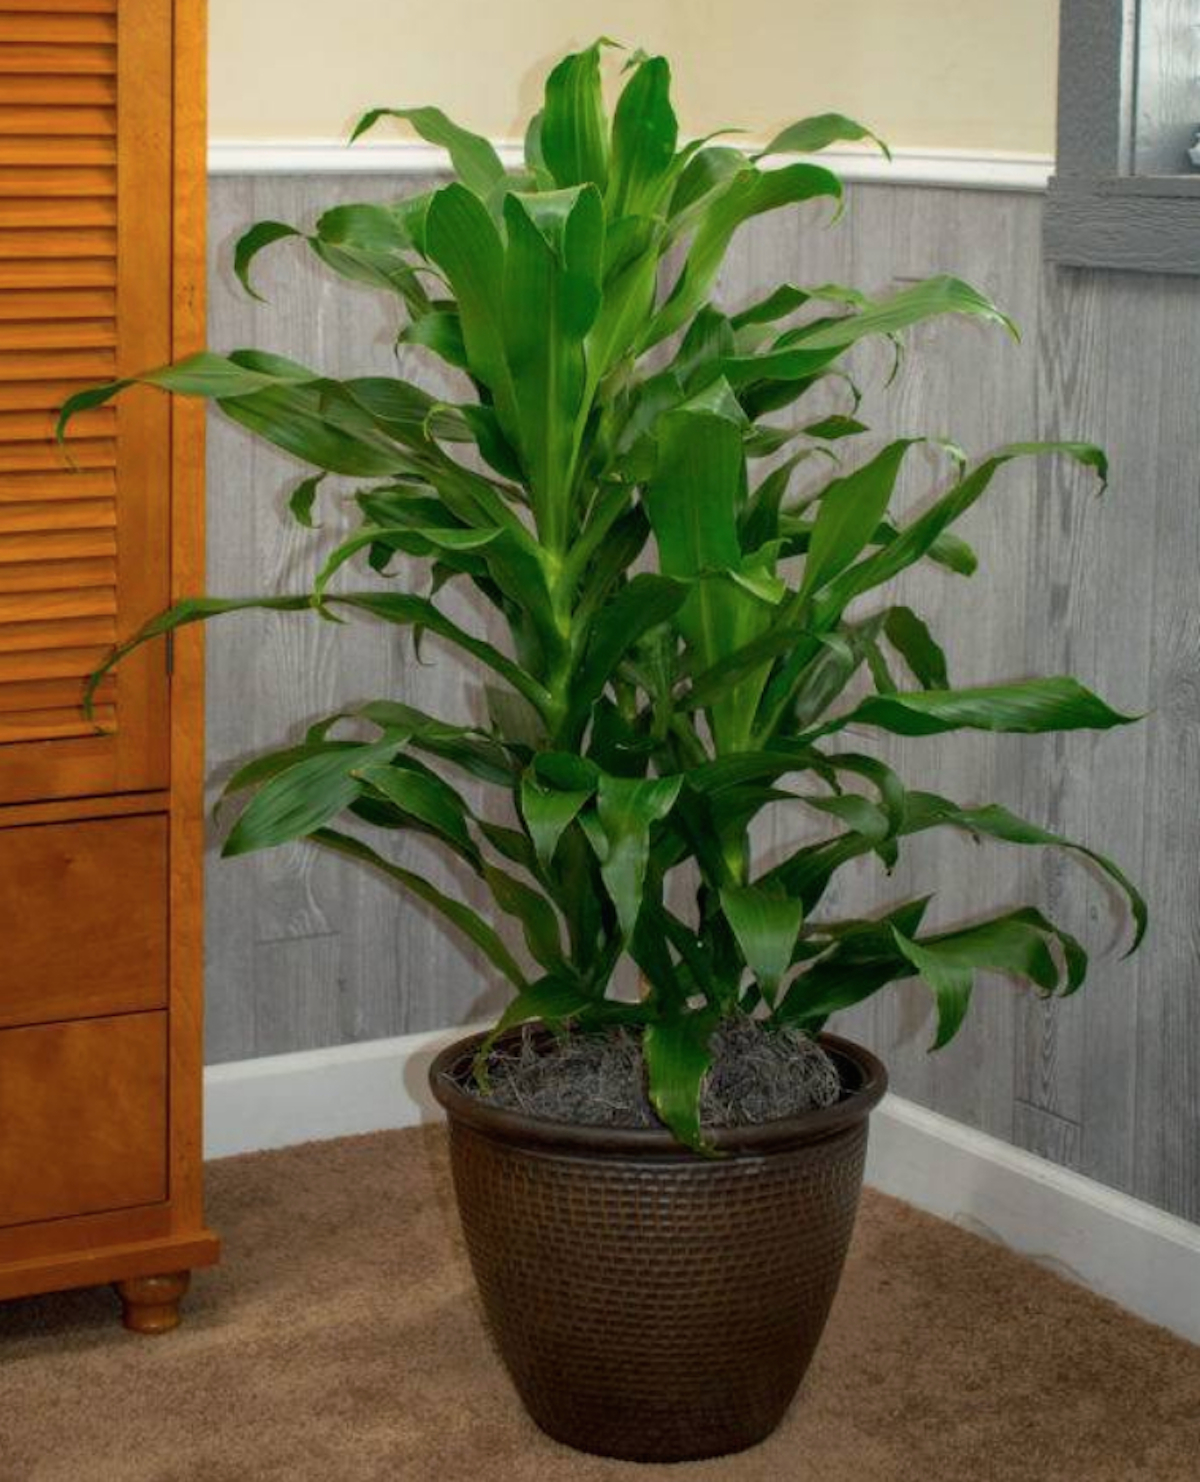 green Dracaena Michiko leaf plant sitting in corner of room